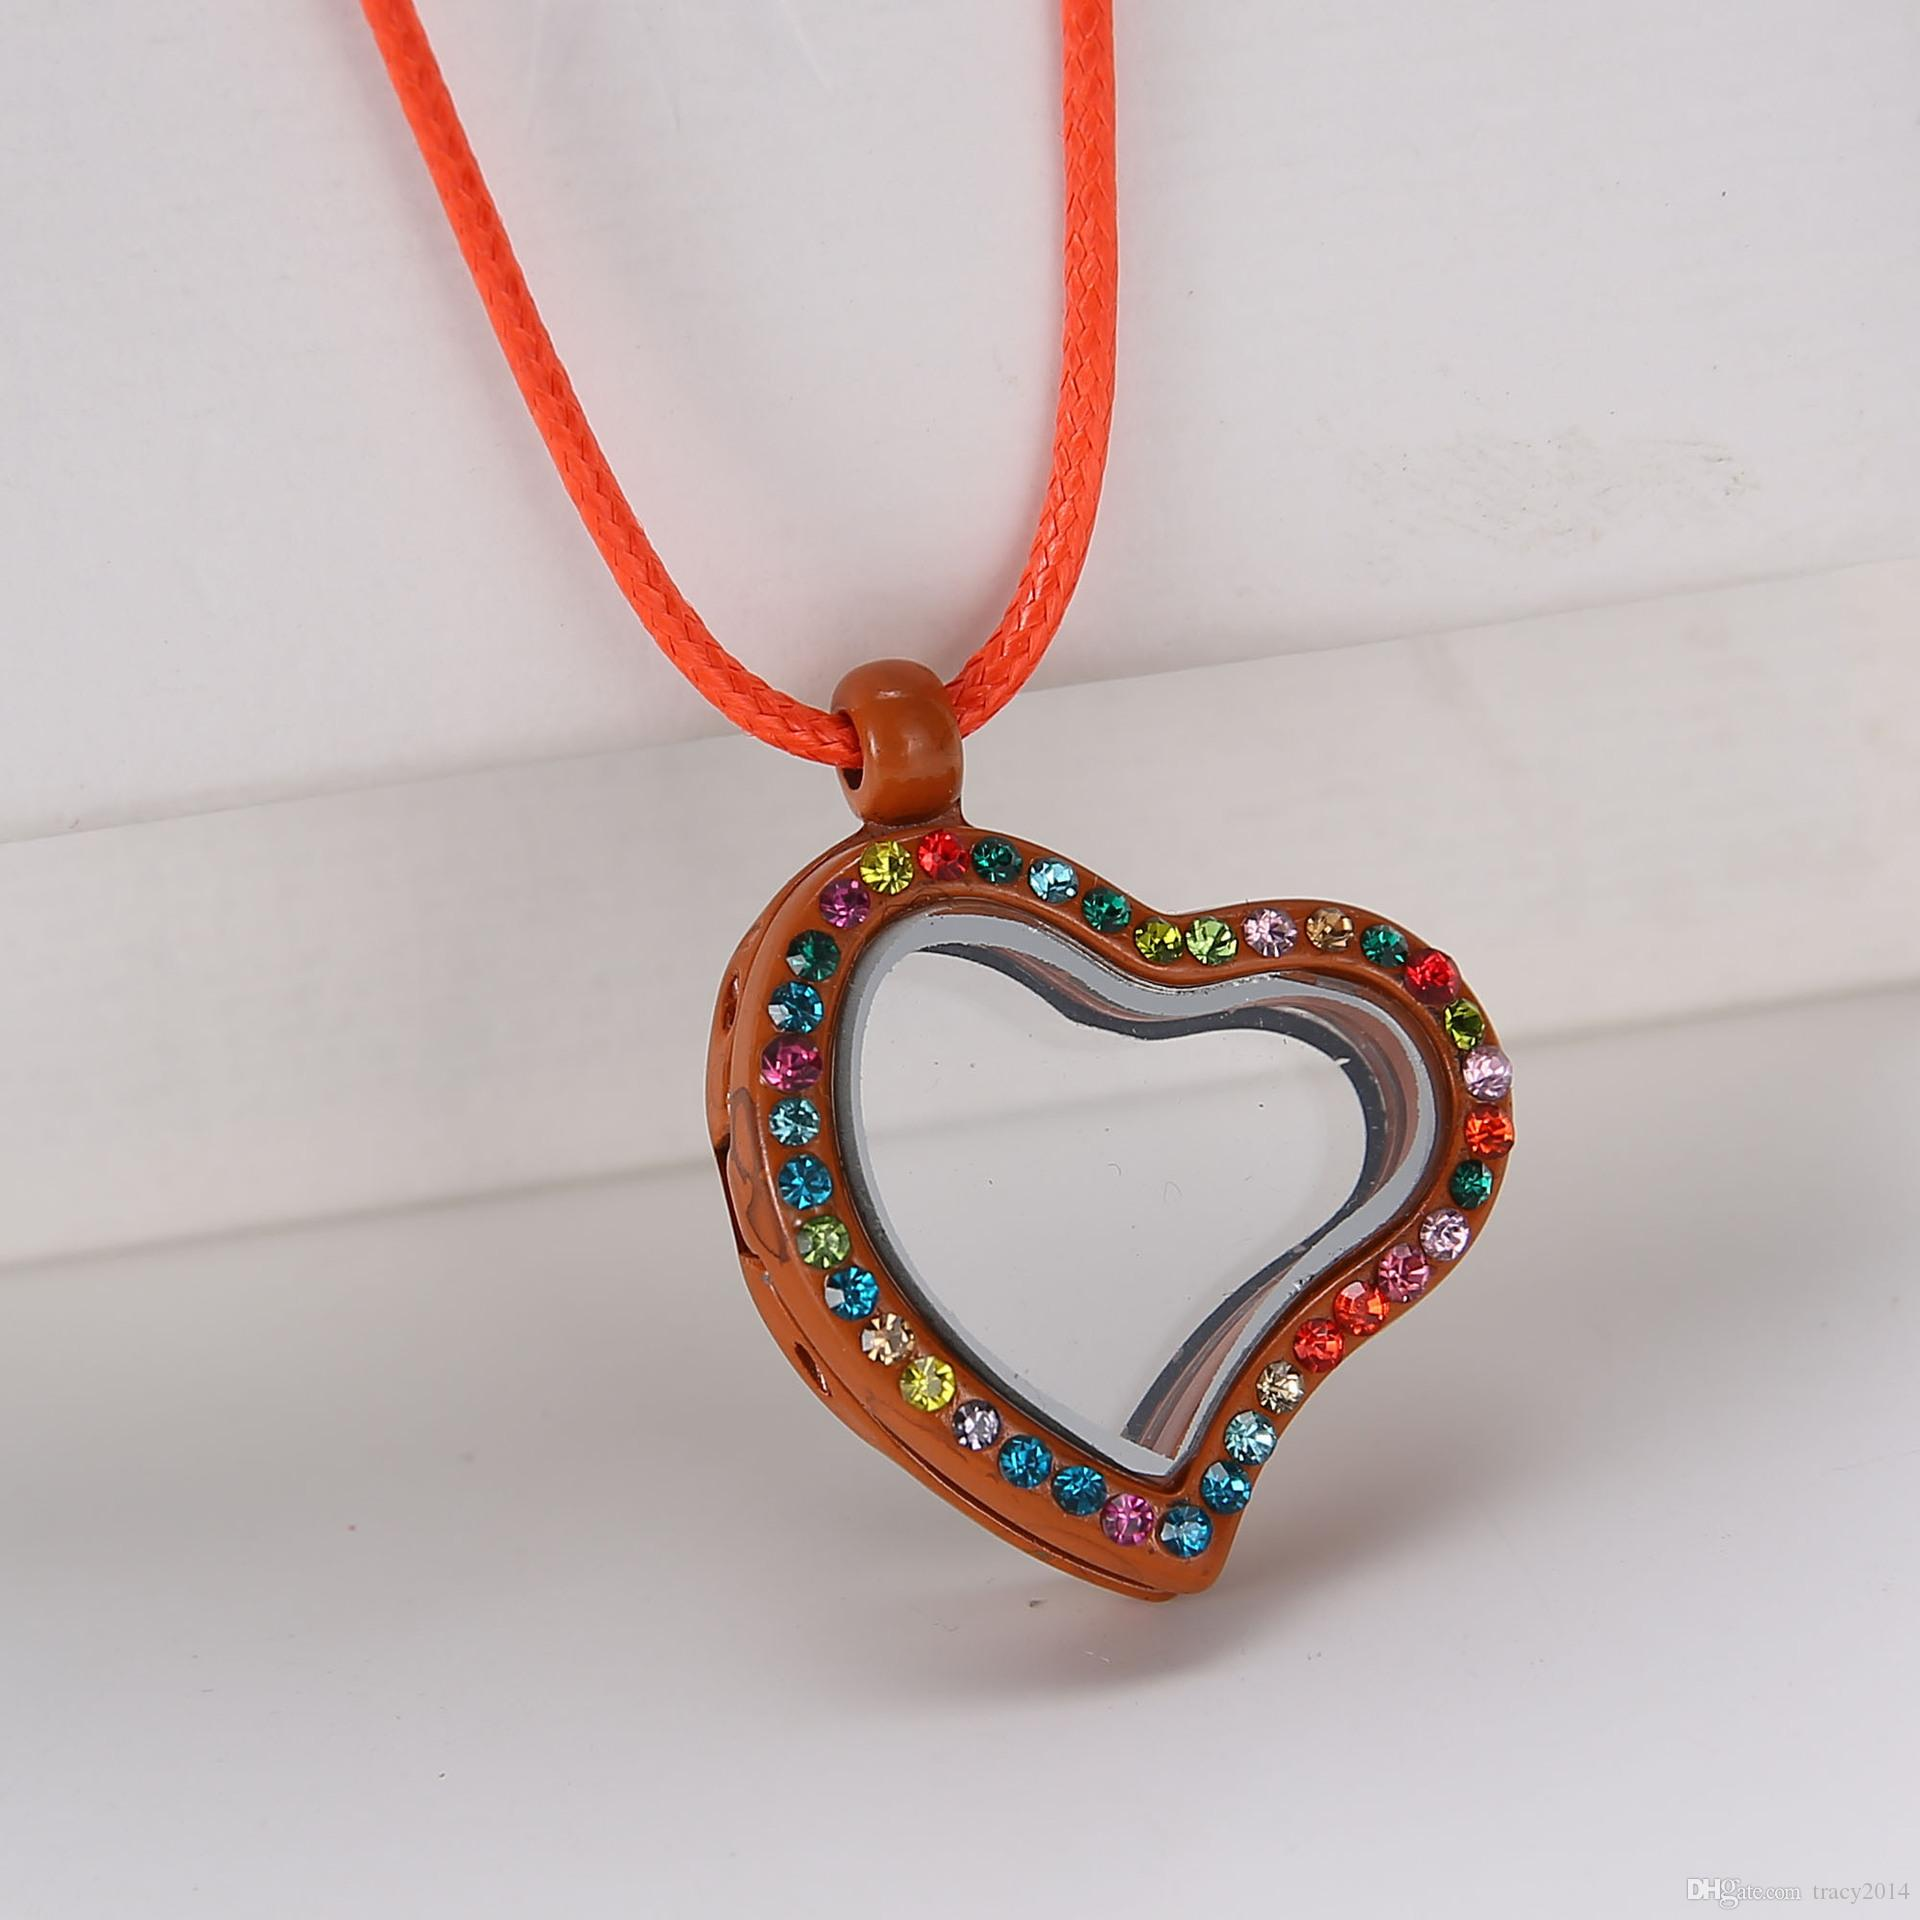 ixed Multicolor Lockets Heart Shape Crystal Floating Charm Glass Living Memory Locket Pendant 25mm included the Necklace